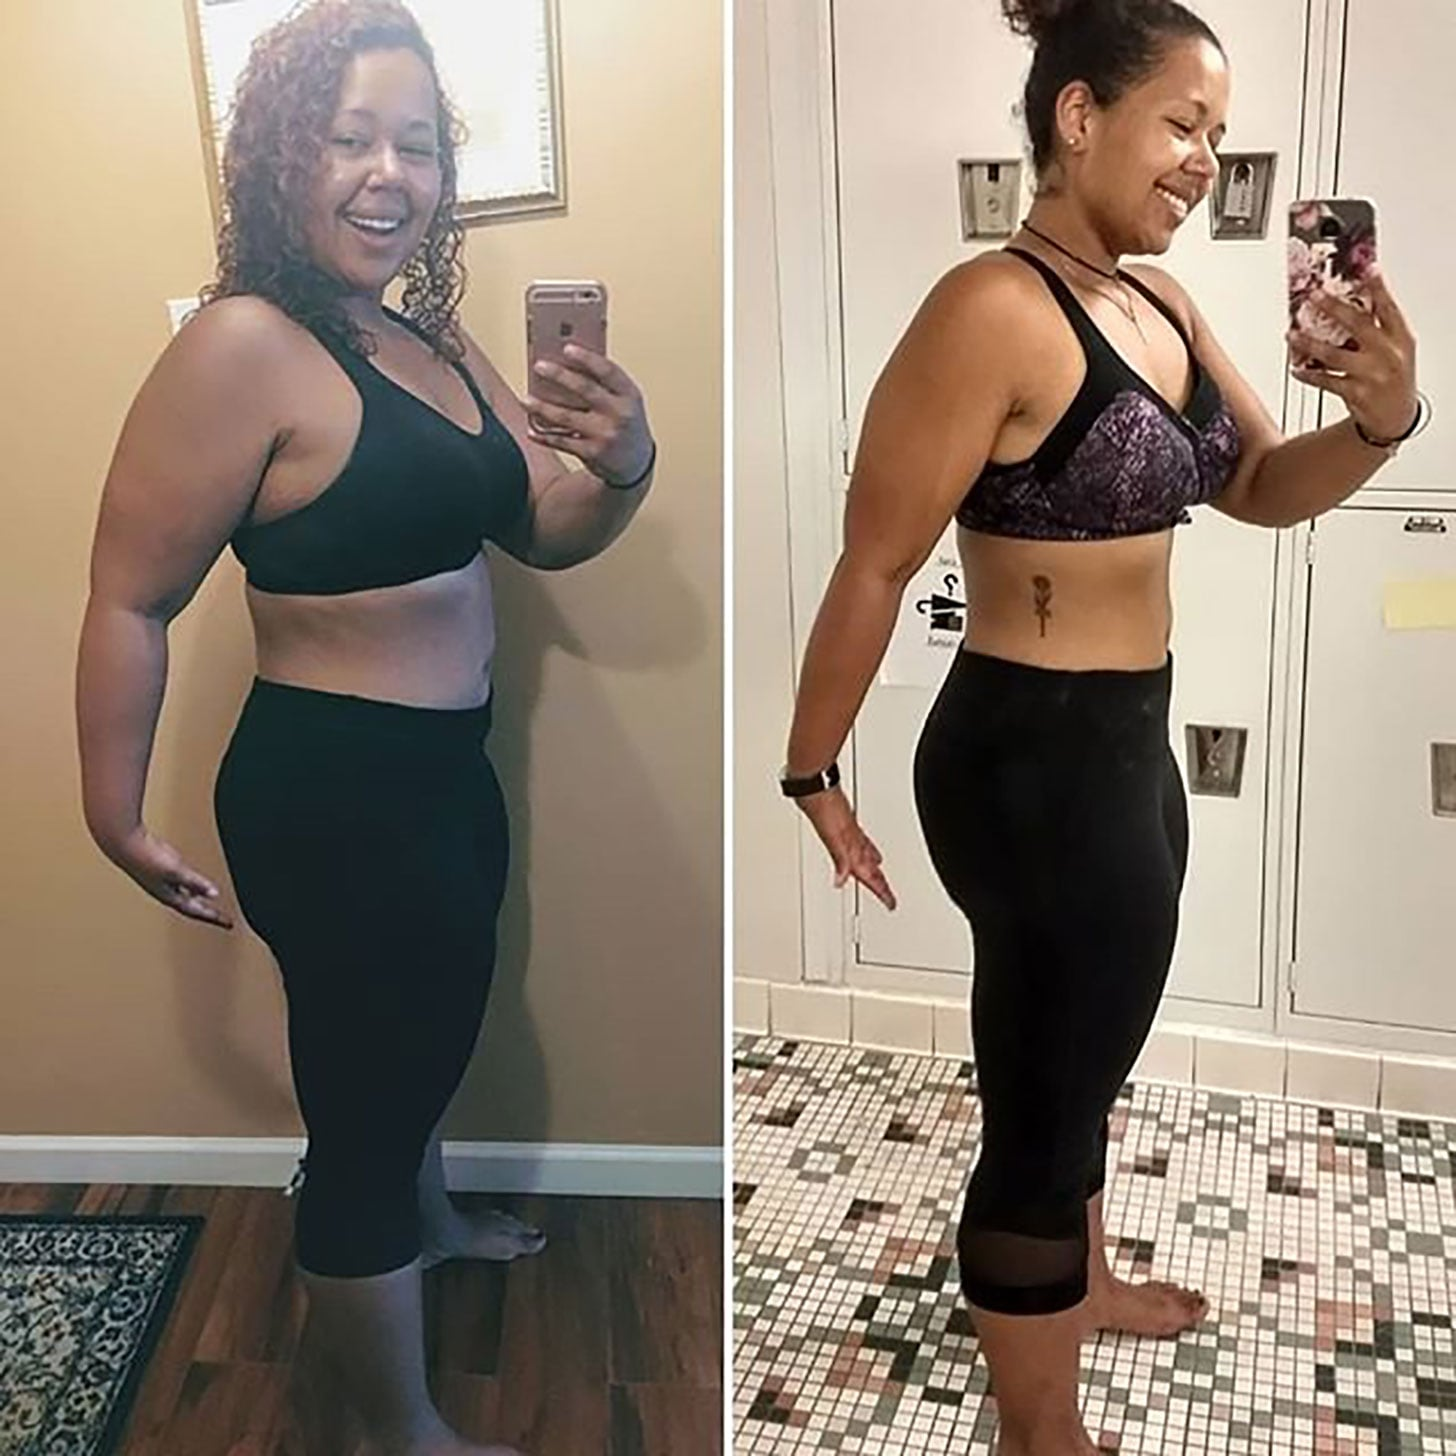 Fit Women Over 40 Before And After : They are healthier and fitter now at nancy reinhardt believes that women over 40 years old are like a driving force and she likes to inspire them.